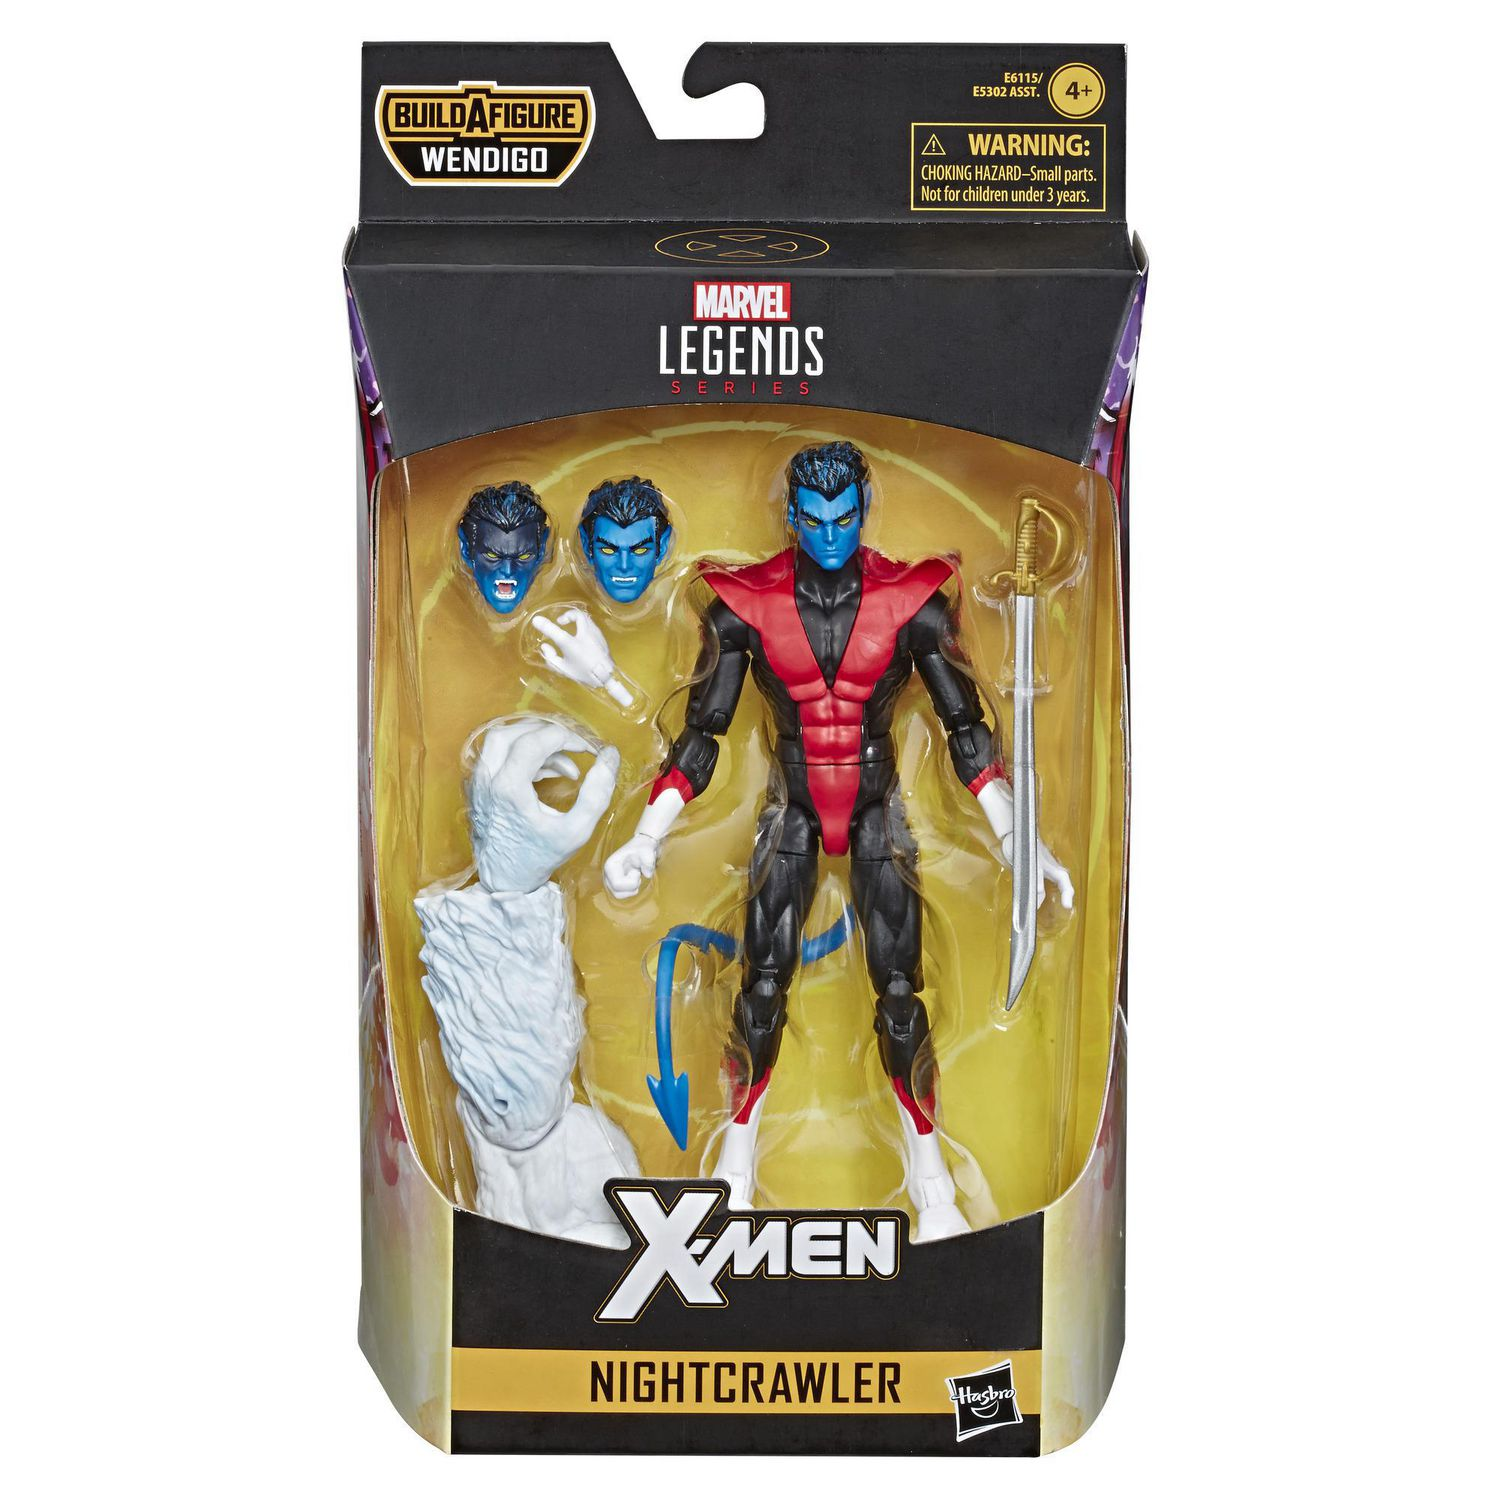 IN HAND Marvel Legends X-Men X-FORCE COMPLETE WENDIGO BAF READY TO SHIP!